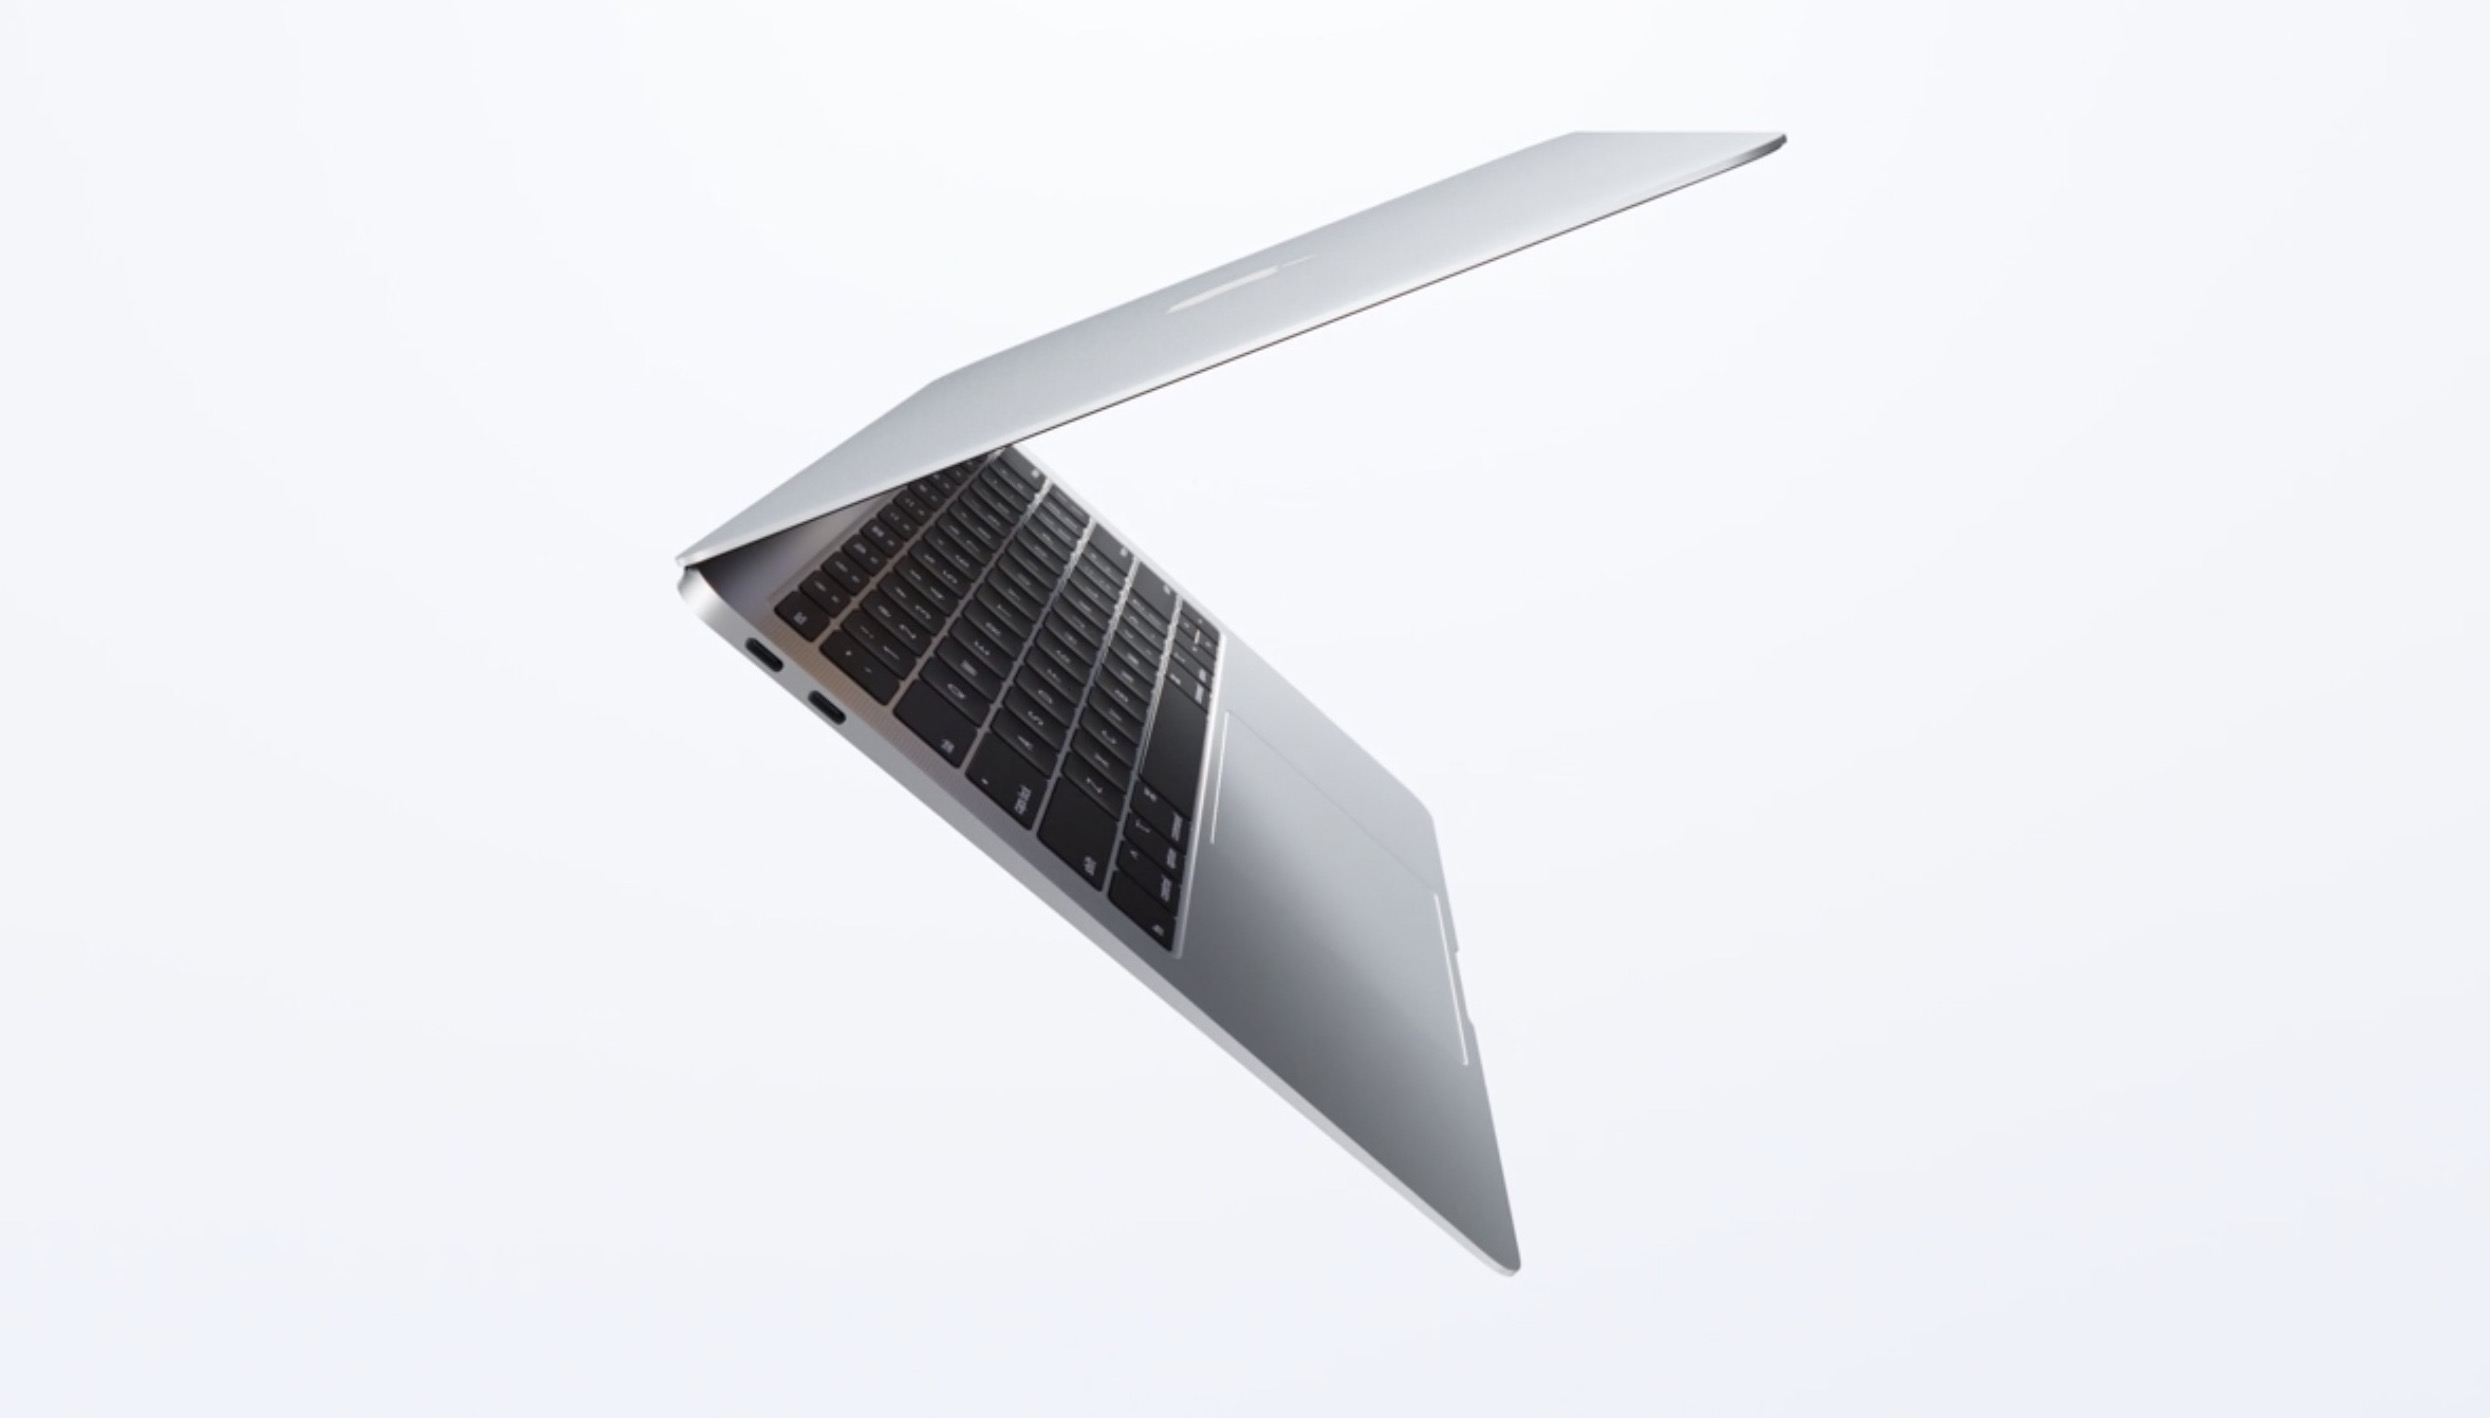 New Macbook Air 2018 5